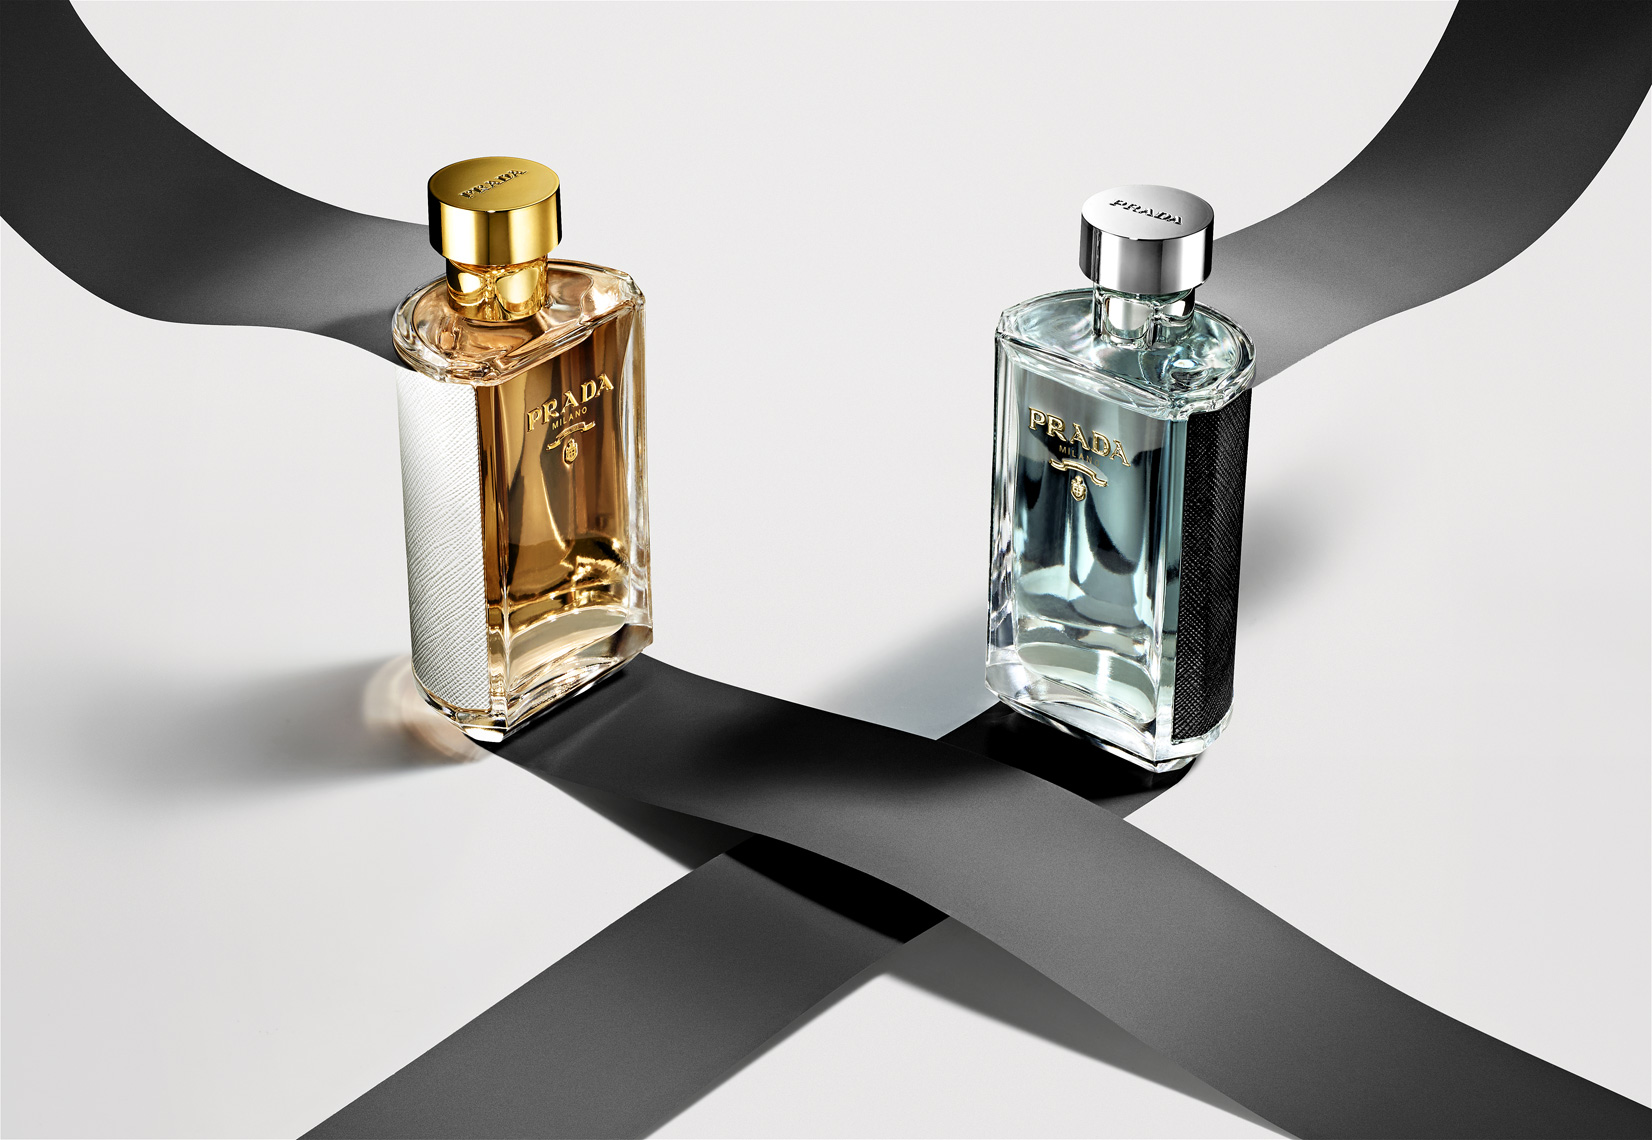 prada_fragrances